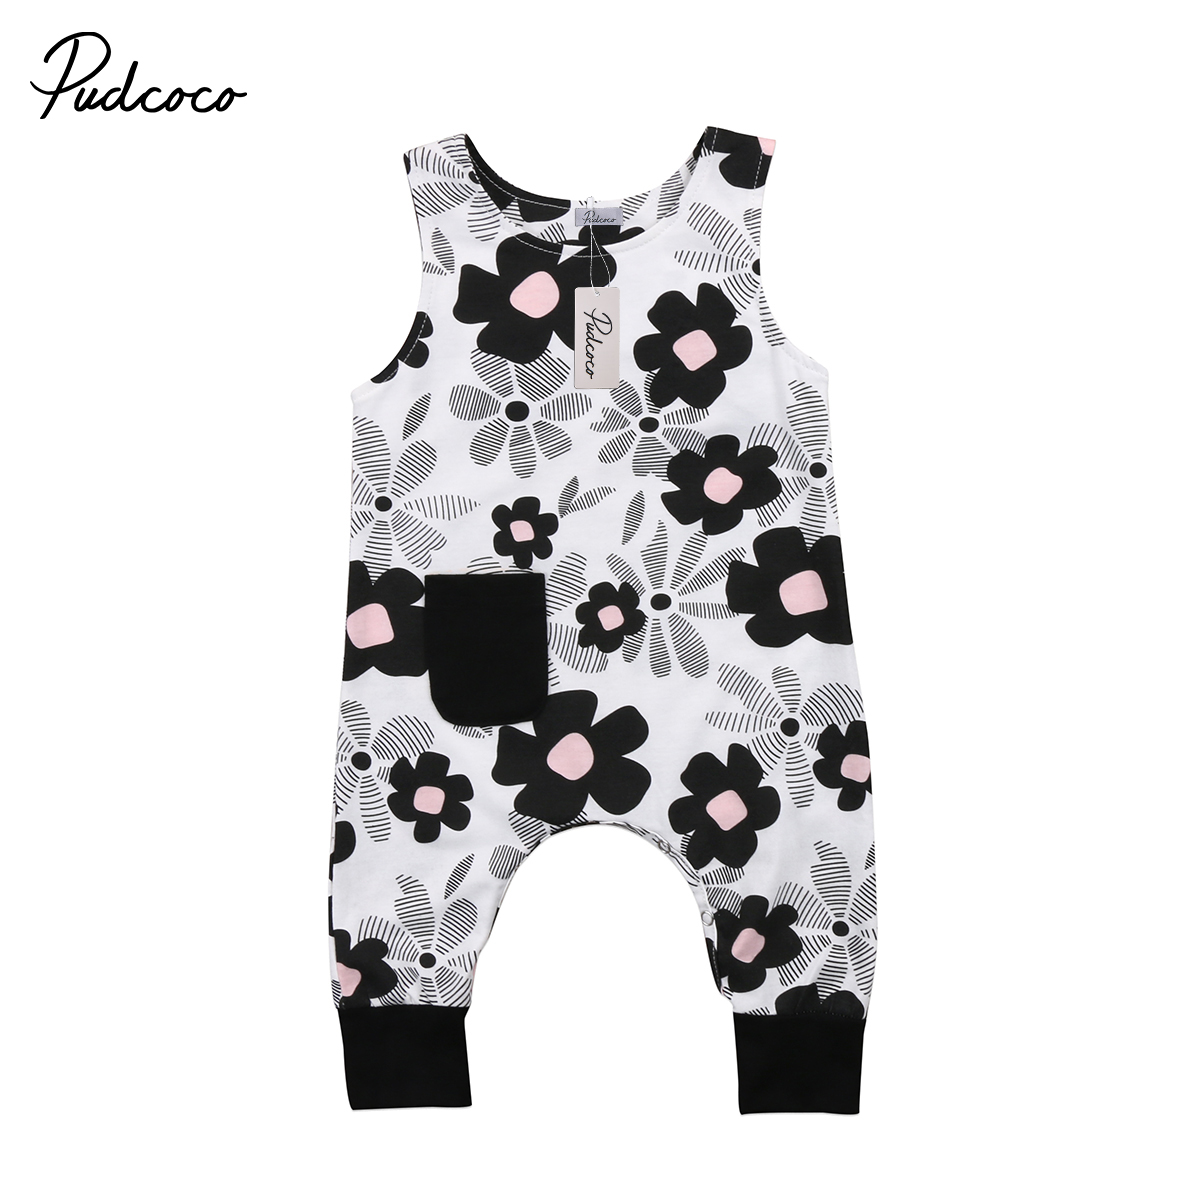 Flower Baby Clothing Newborn Baby Girl Floral Sleeveless Romper Jumpsuit Baby Clothes Cotton Floral Outfit 0-18M